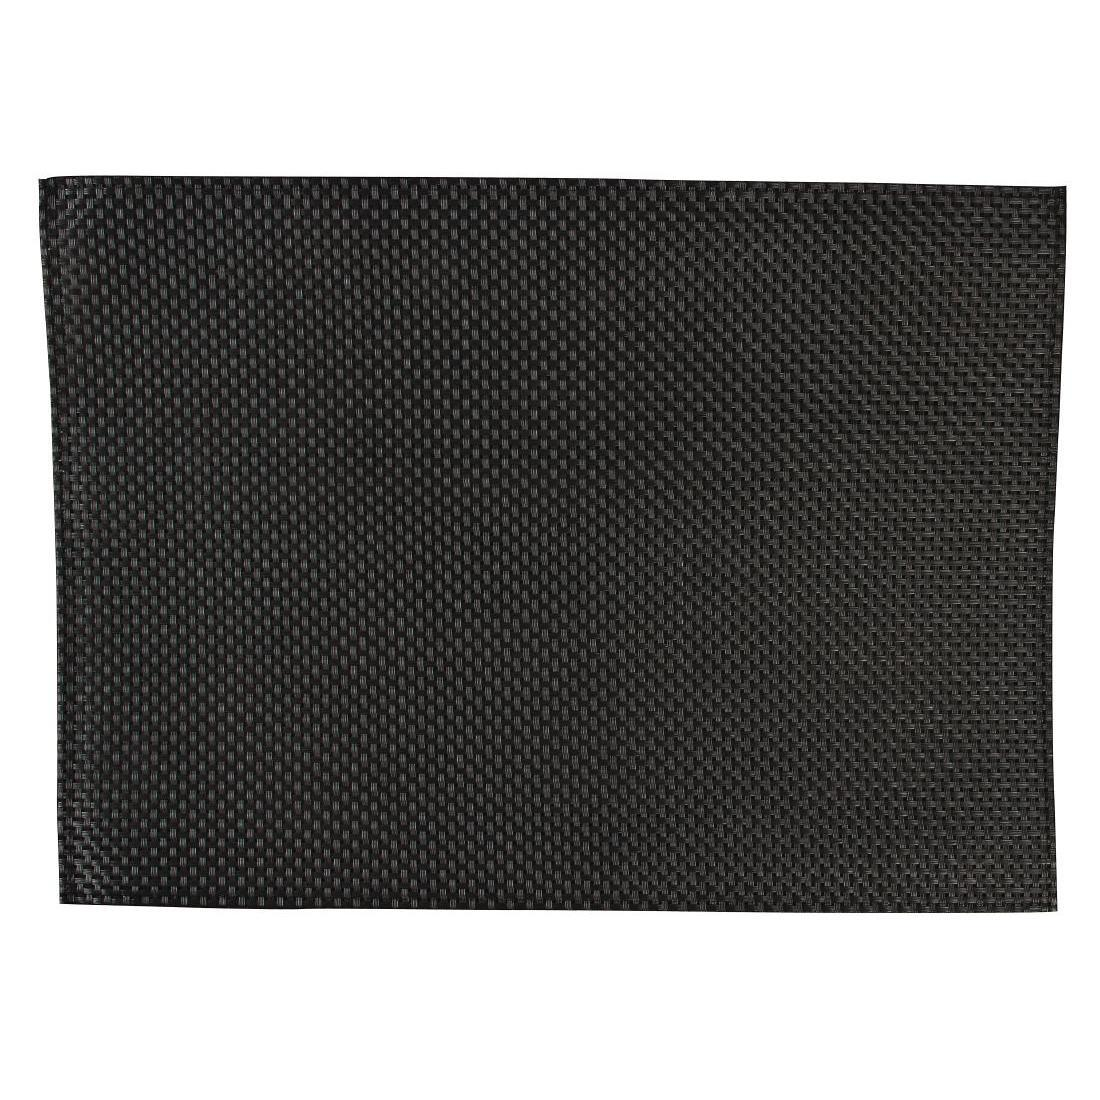 Melamine and PVC Table Mats